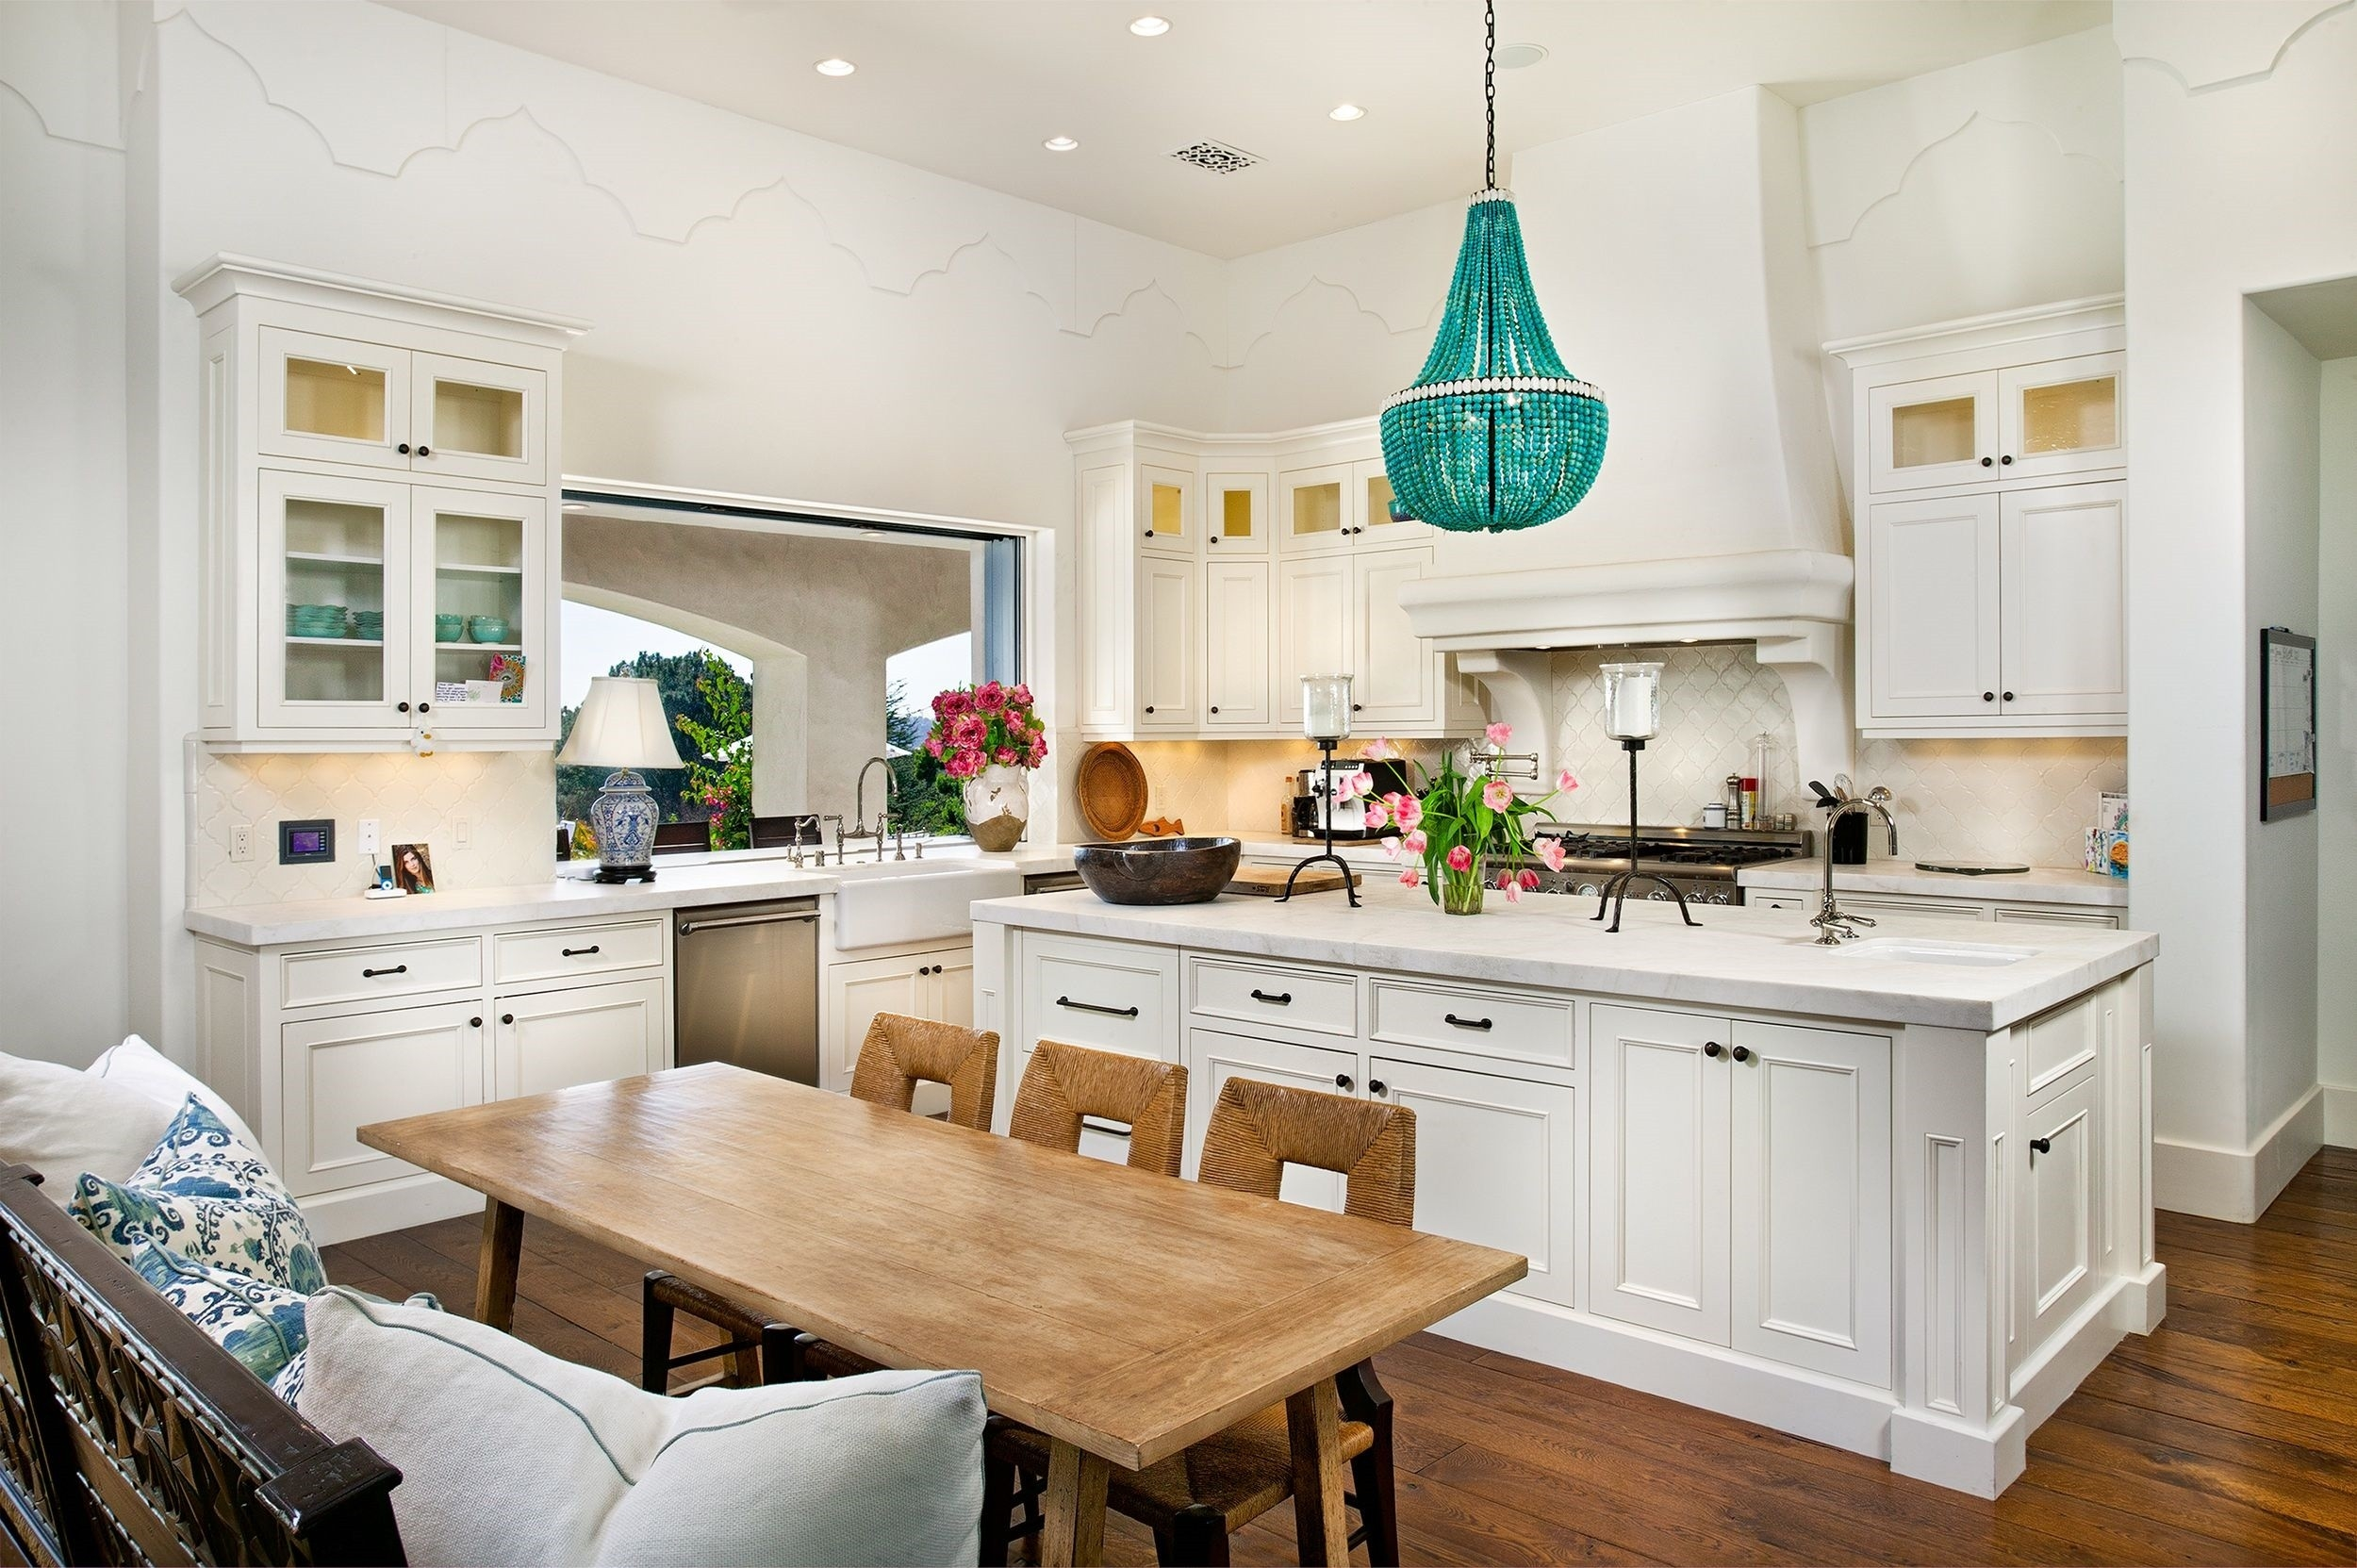 Kitchen Elegant Of Kitchen Chandelier Ideas Kitchen Light Regarding Turquoise Chandelier Lights (View 24 of 25)